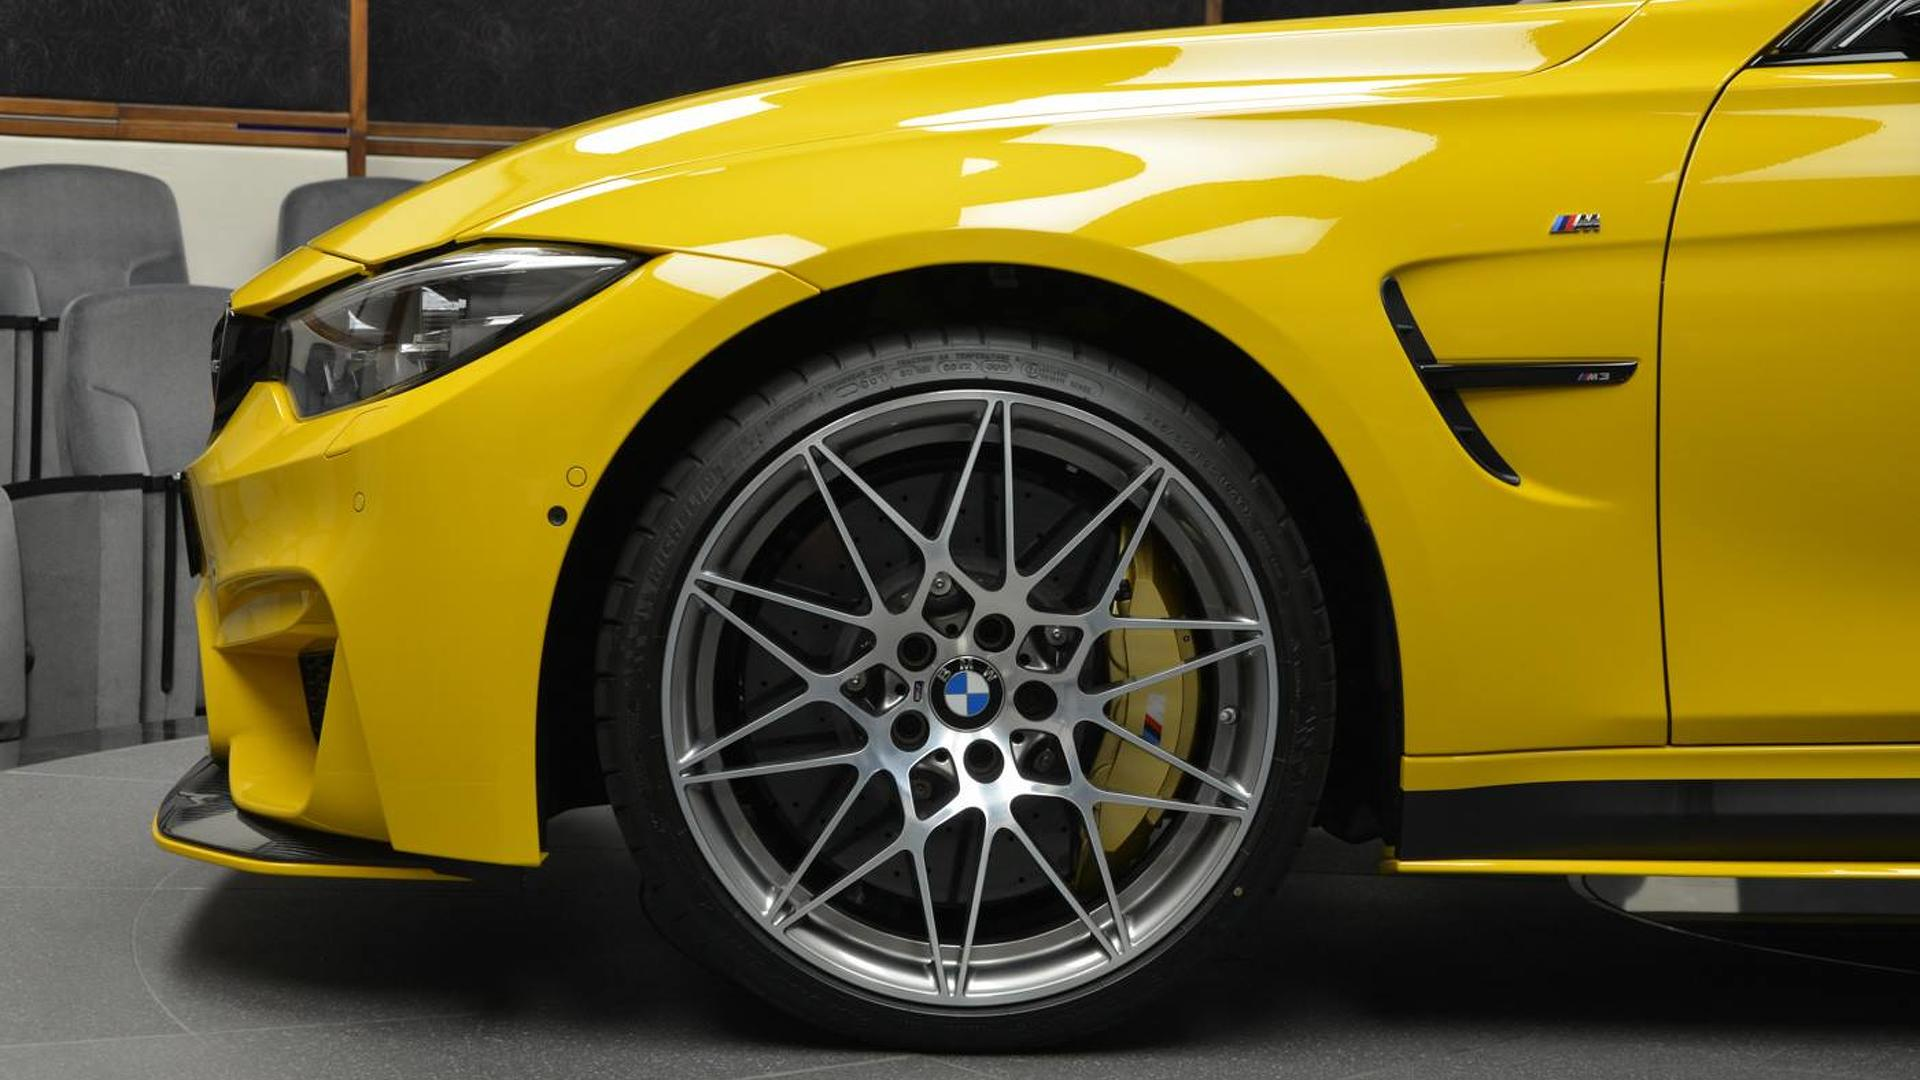 BMW_M3_Speed_Yellow_09